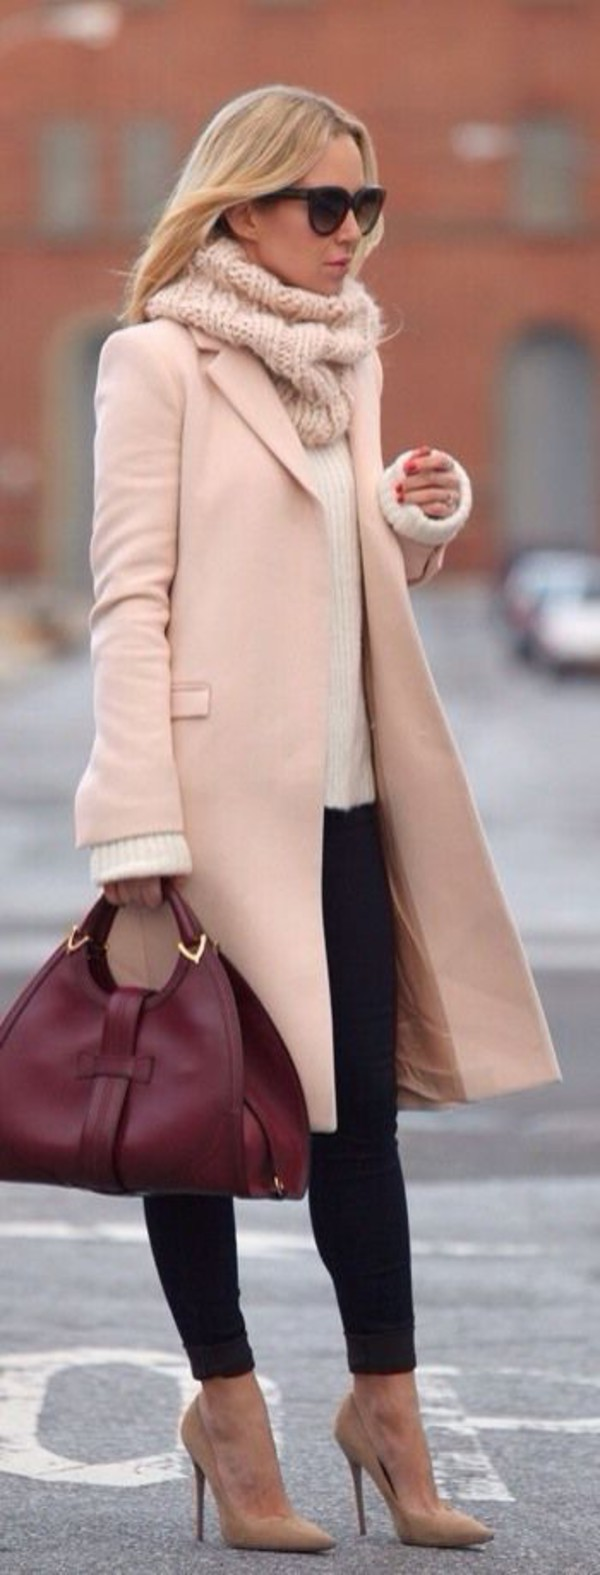 coat wool overcoat pointed toe pumps bag sweater knitted scarf all nude everything white sweater black pants black sunglasses sunglasses pumps nude heels nude pumps pointy heels pointy pump stilettos fall outfits fall coat fall scarves fall accessories high heels